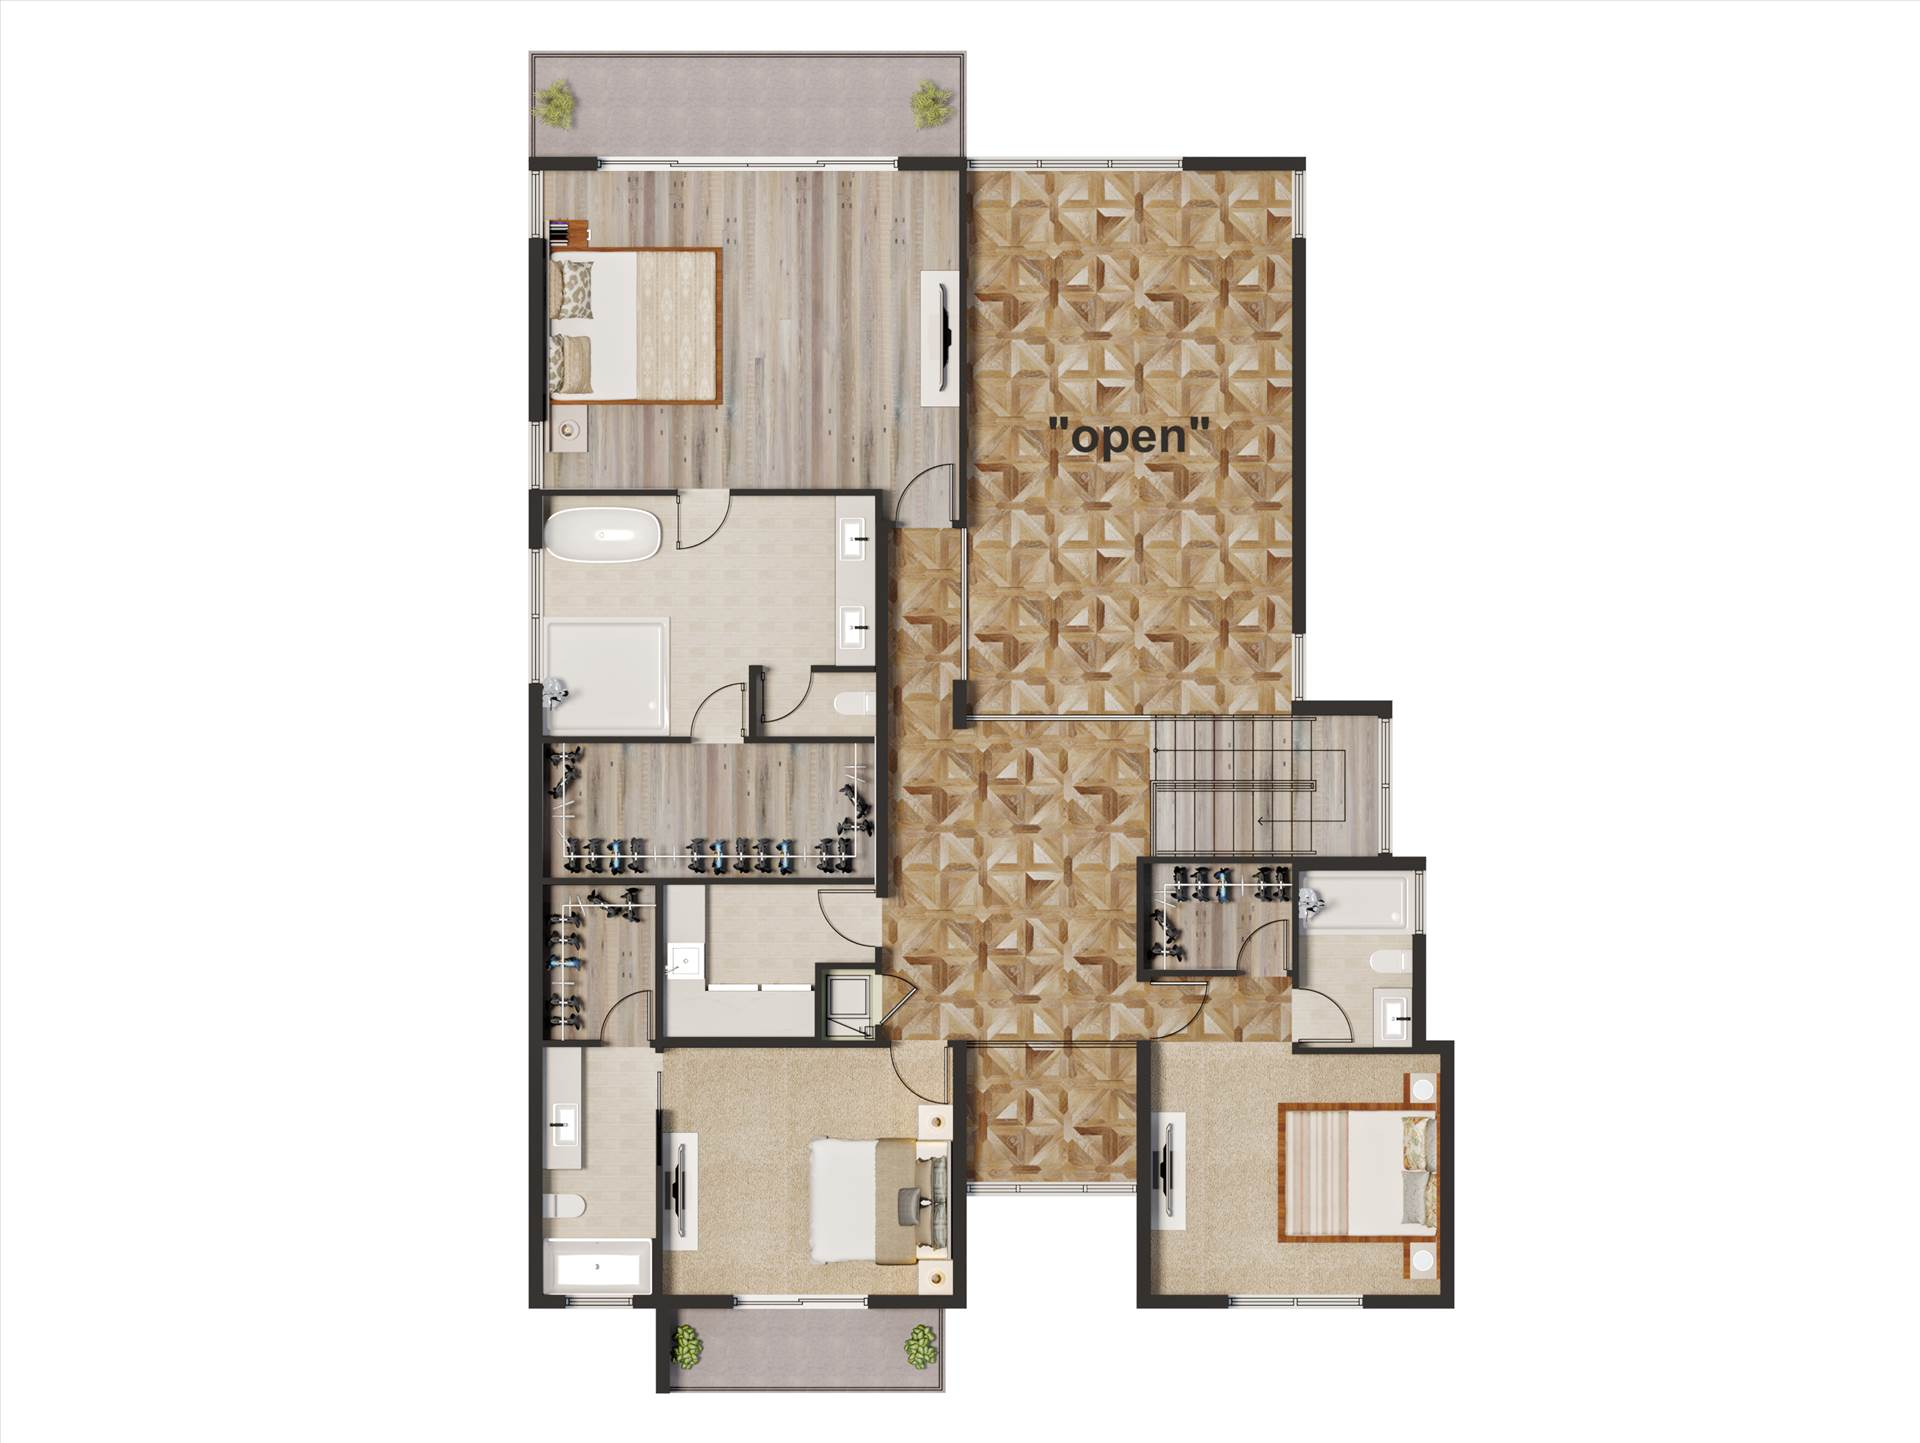 Floor Plan Rendering Services For Home Builders In Fort Lauderdale Florida Real Estate agent and Developer and am building some spec homes. full color Floor Plan Rendering with some integrate some of the finishes like flooring, kitchen, etc. by JMSDCONSULTANT